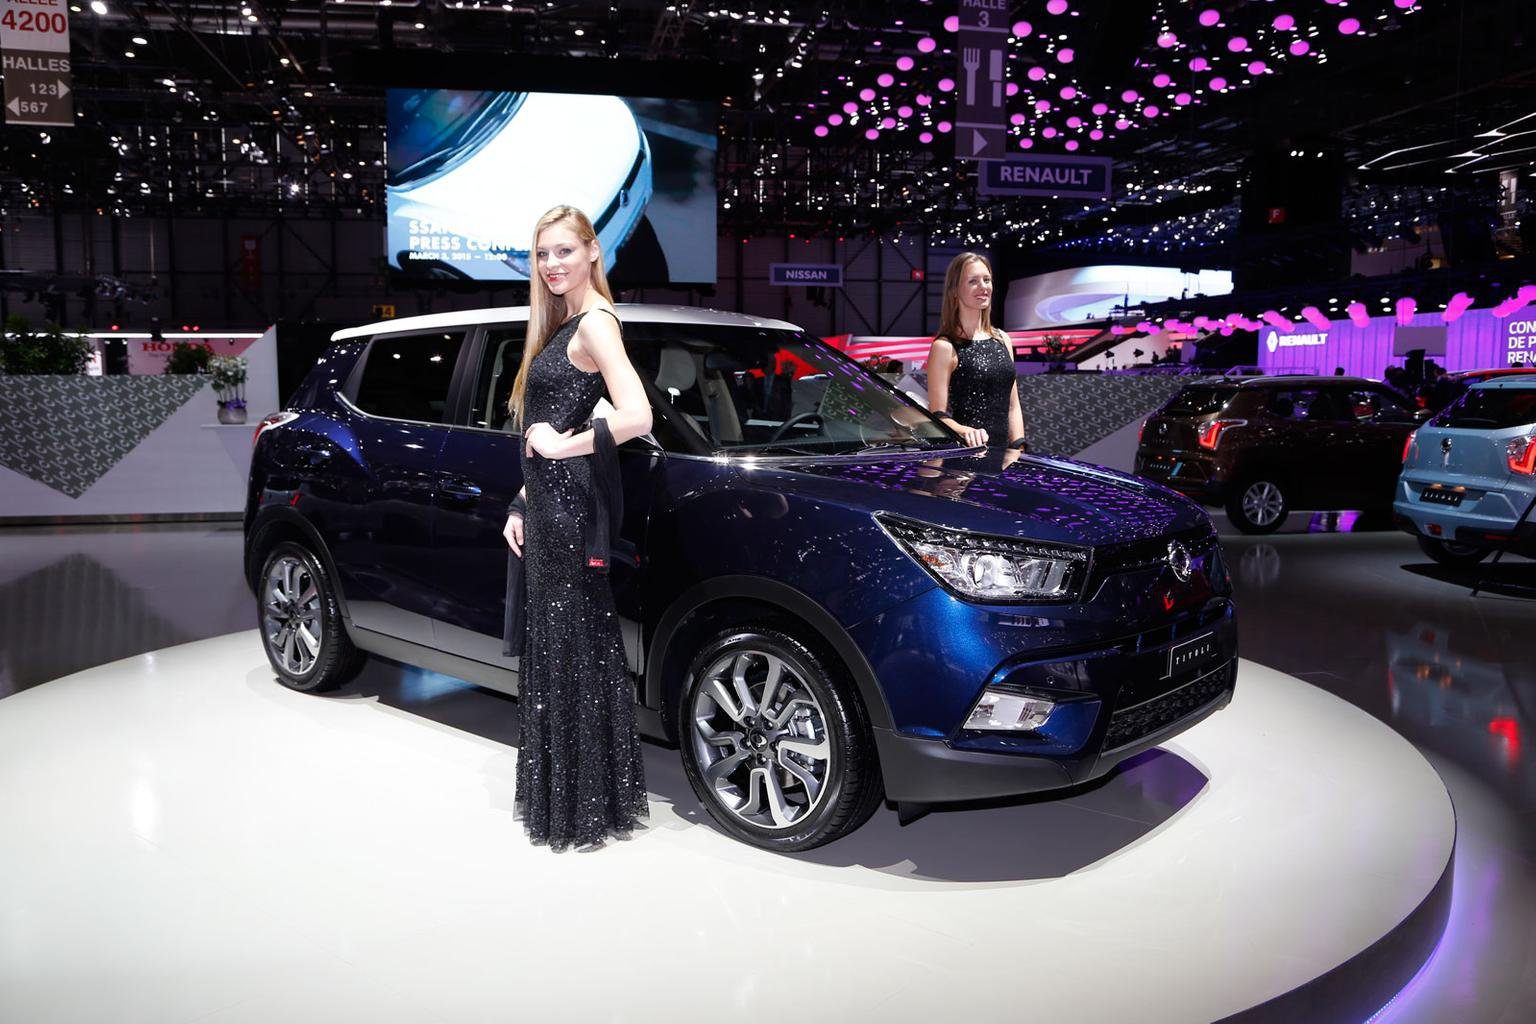 2015 Ssangyong Tivoli SUV - prices, specification and pictures